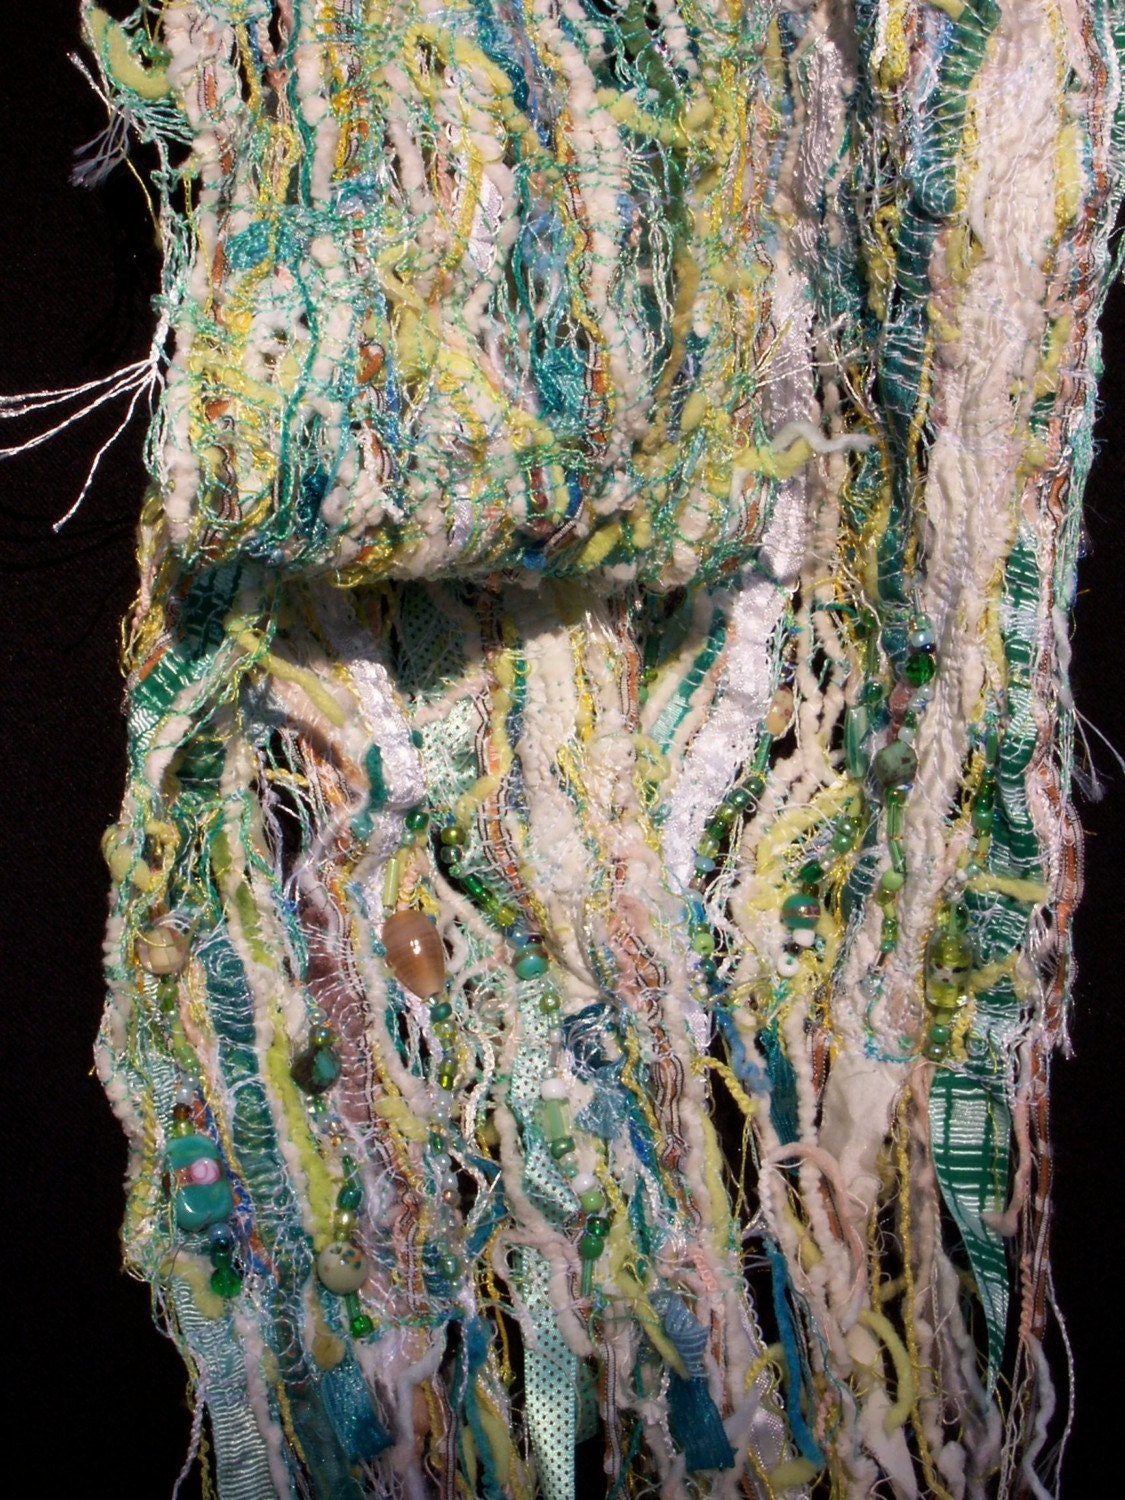 Sea Side Cottage X-Stream Fibers Quilted Fashion Scarf, cotton, ribbons, wool, and glass beads in aqua.